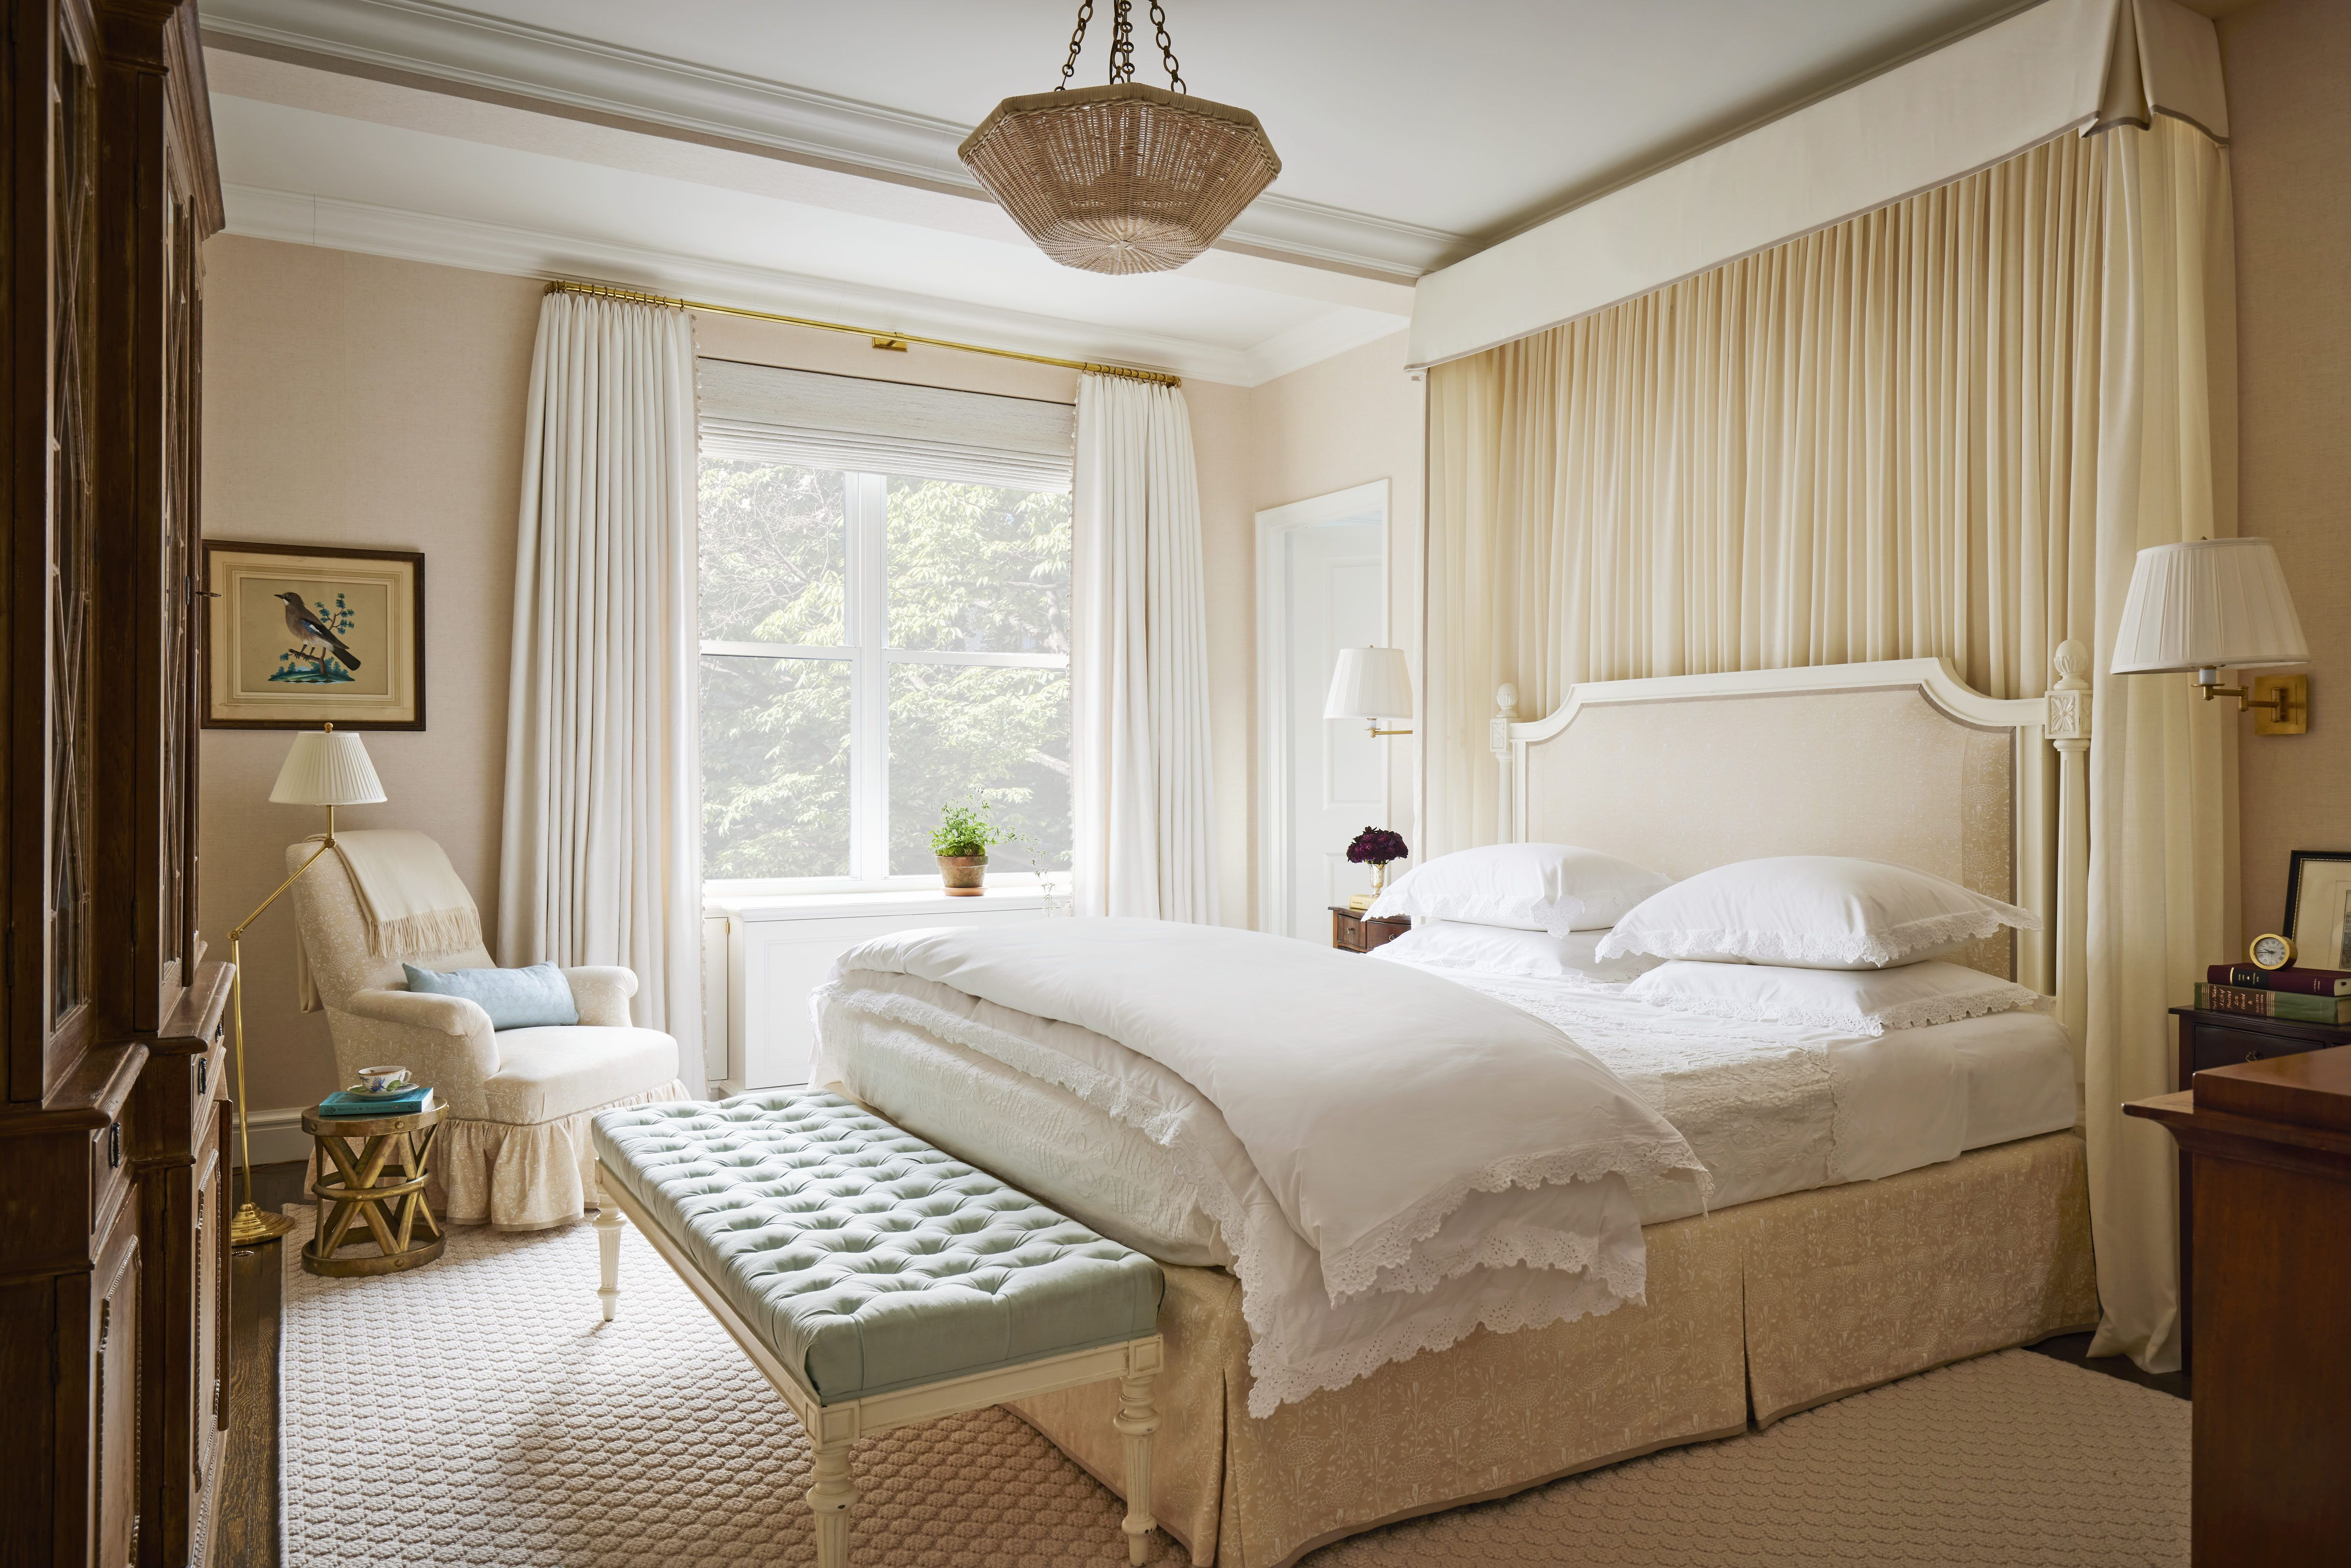 Curious to see what's cheap? 85 Best Bedroom Ideas 2021 Beautiful Bedroom Decorating Tips